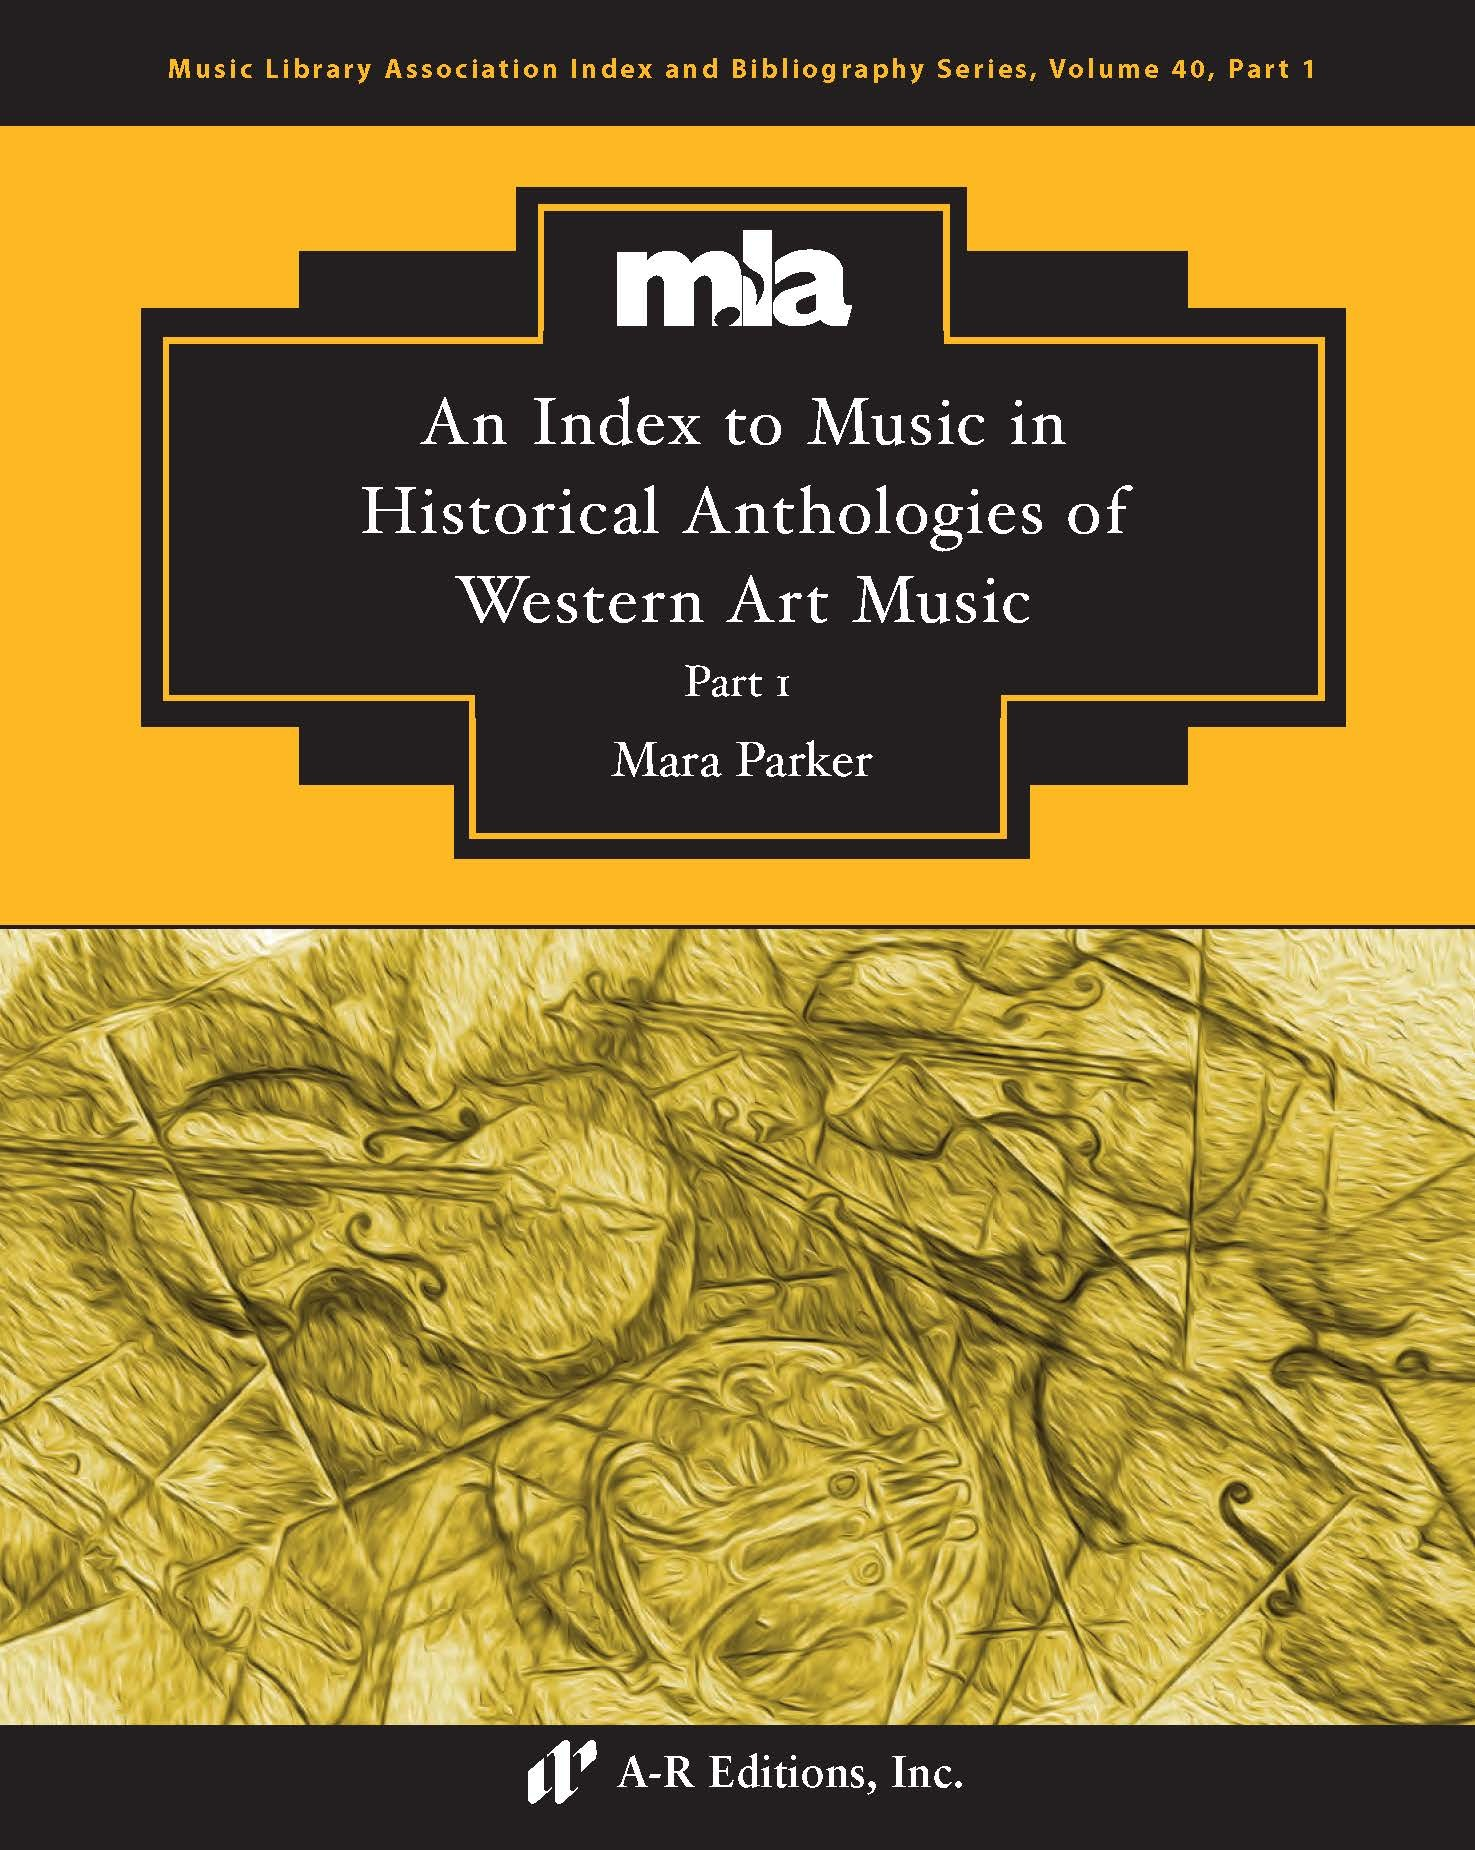 Parker: Index to Music in Historical Anthologies, Part 1